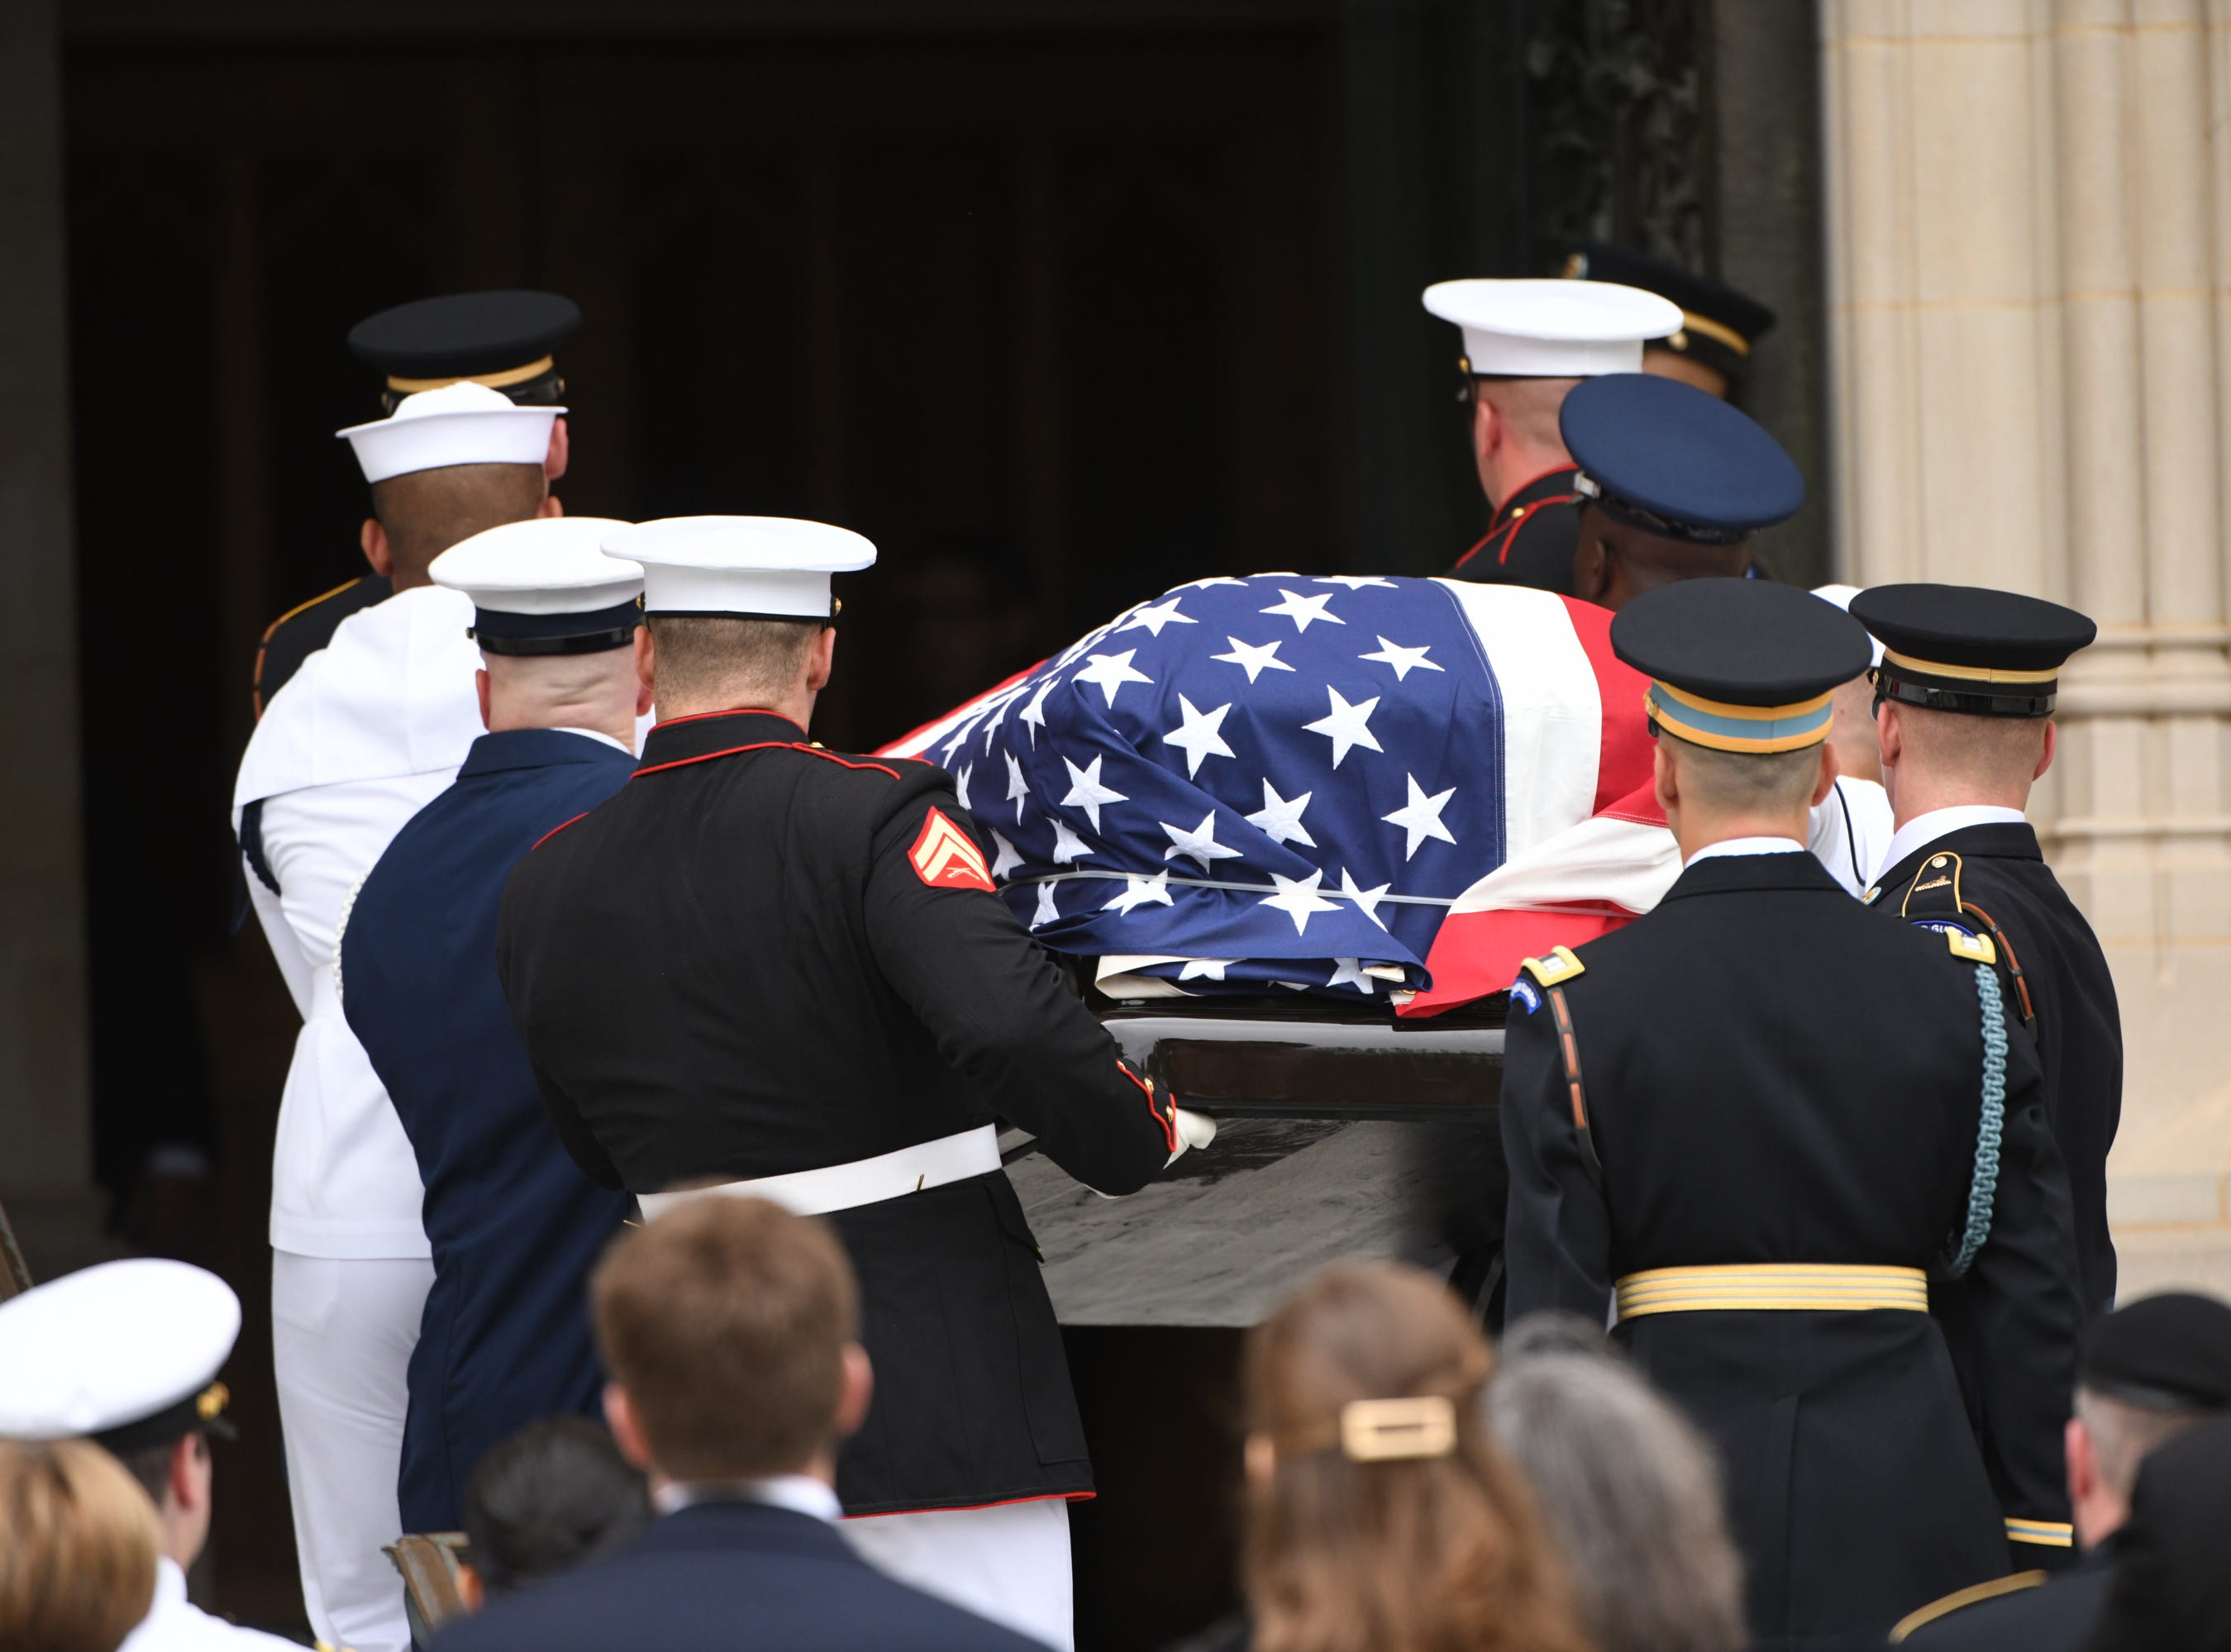 9/1/18 9:48:15 AM -- Washington, DC, U.S.A  -- Members of the McCain family watch as John McCainÕs casket is carried into the National Cathedral in Washington for a memorial service on Sept. 1, 2018. Sen. McCain died on Aug. 25. --    Photo by Jasper Colt, USA TODAY Staff